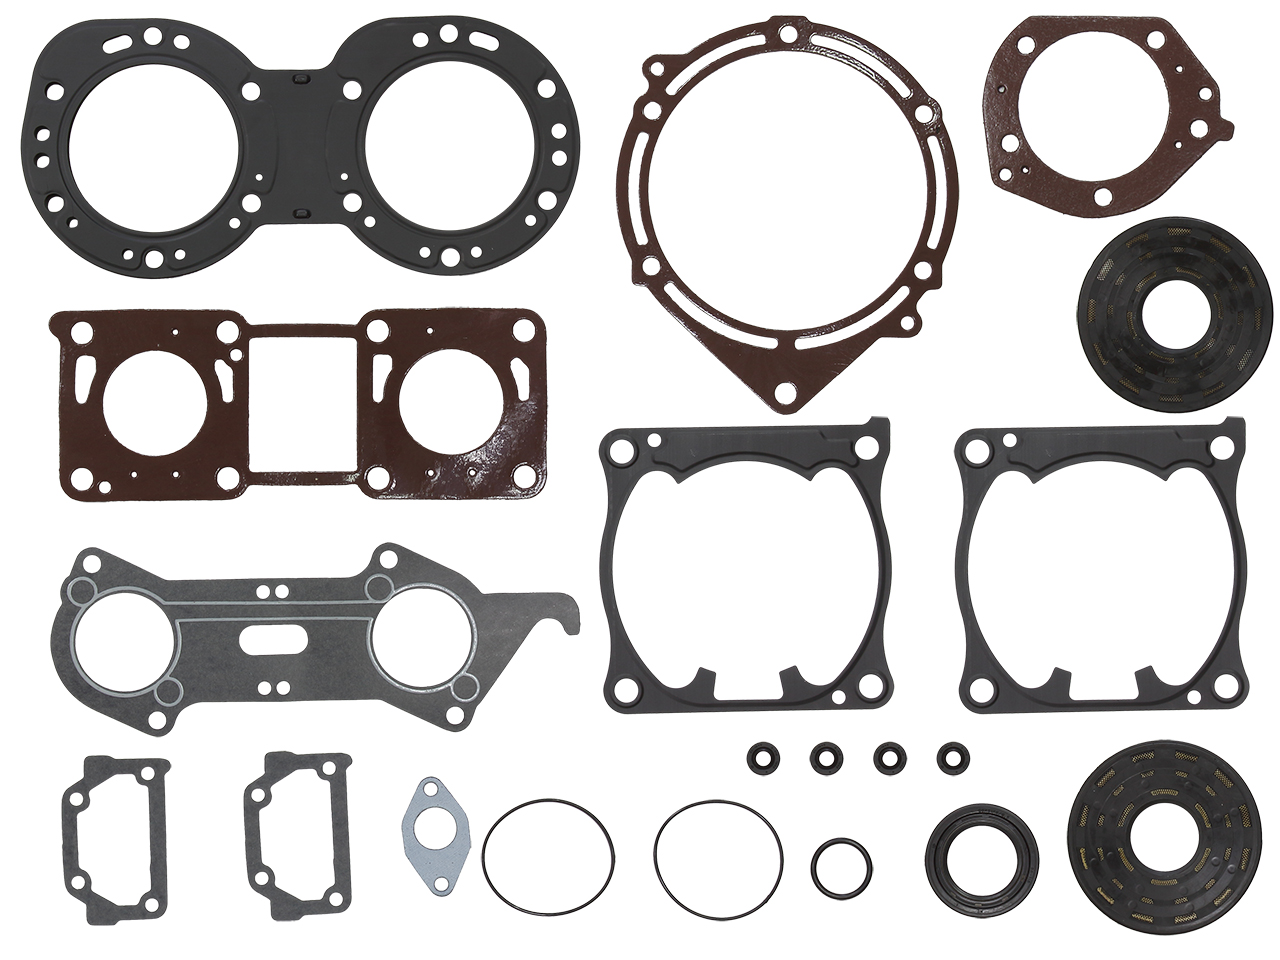 NAMURA COMPLETE GASKET KIT NW-40003F